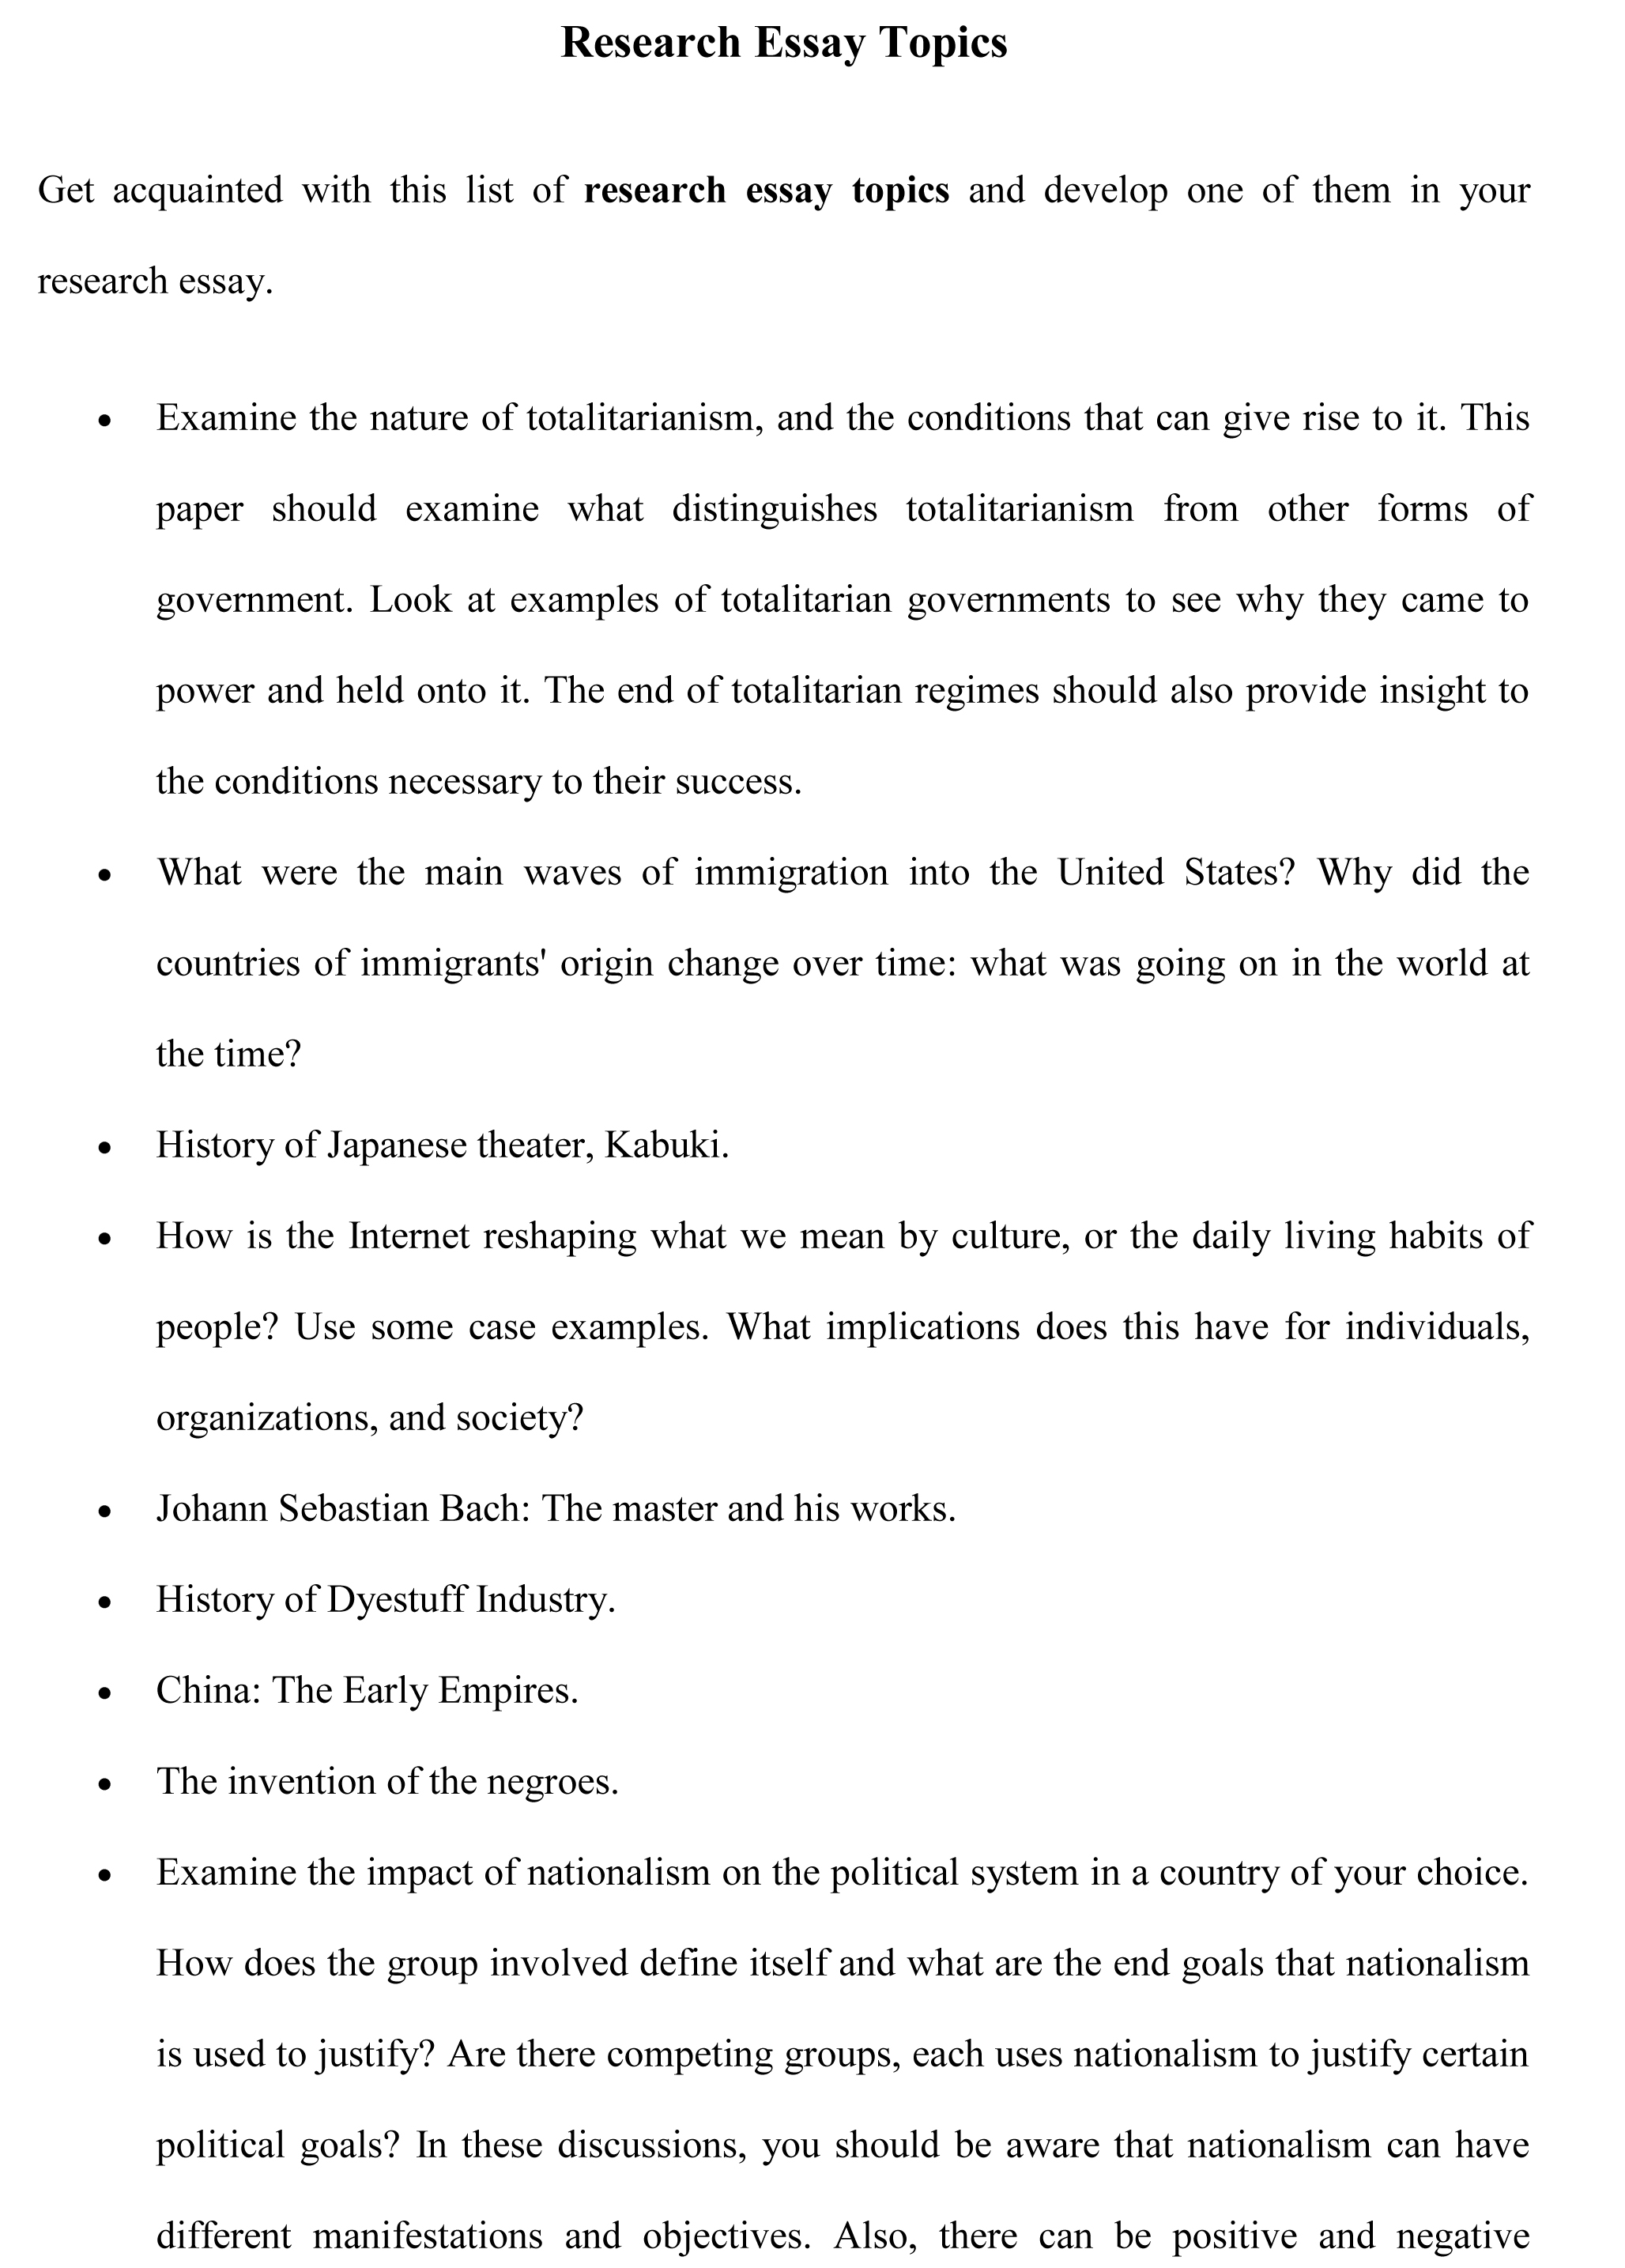 003 Interesting Essay Topics Example Research Amazing Descriptive To Write About For Grade 8 In Urdu Synthesis Full